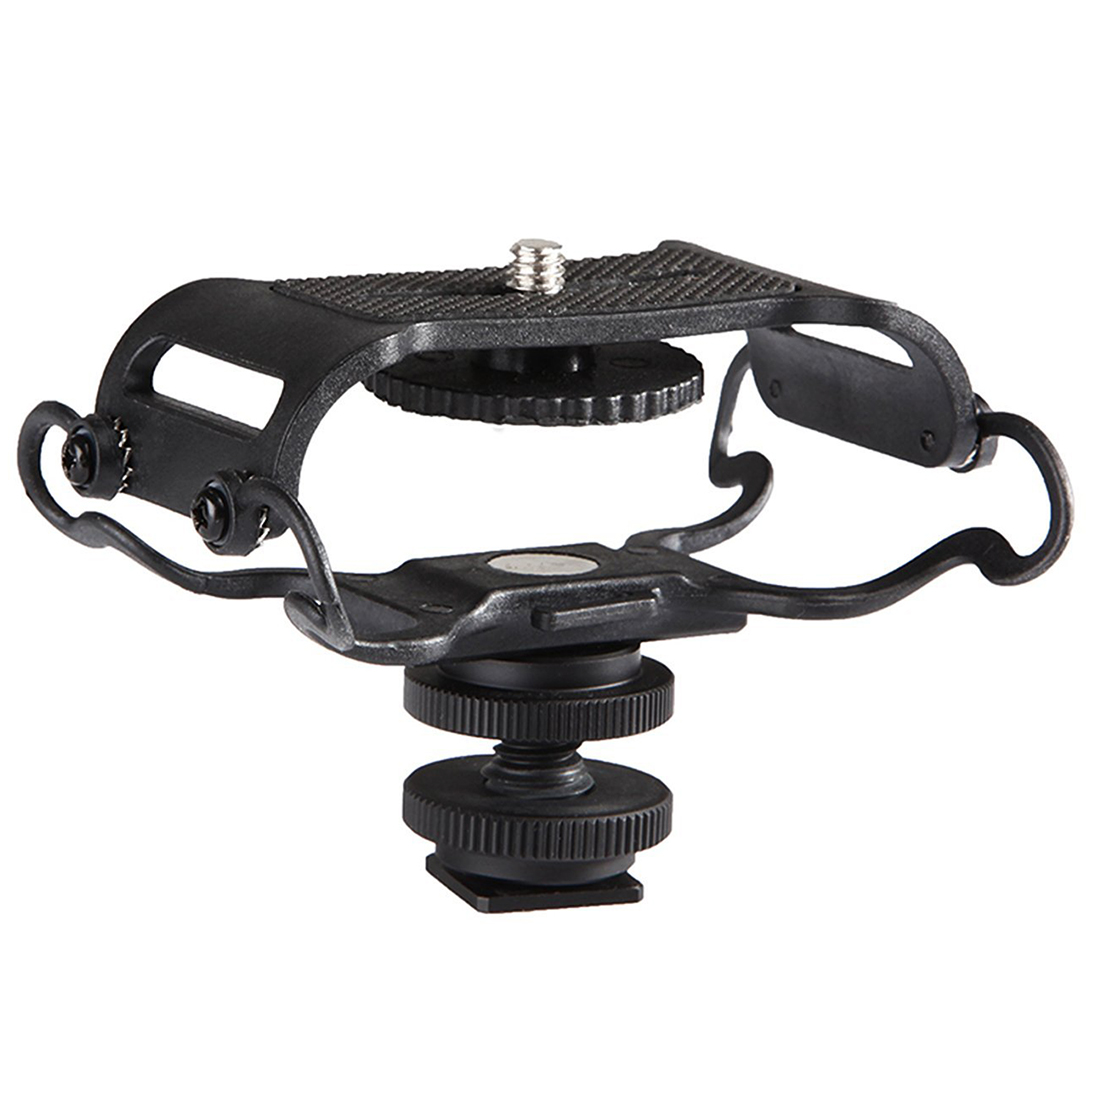 AAAE Top Microphone and Portable Recorder Shock Mount - Fits the Zoom H4n, H5, H6, Tascam DR-40, DR-05, DR-07